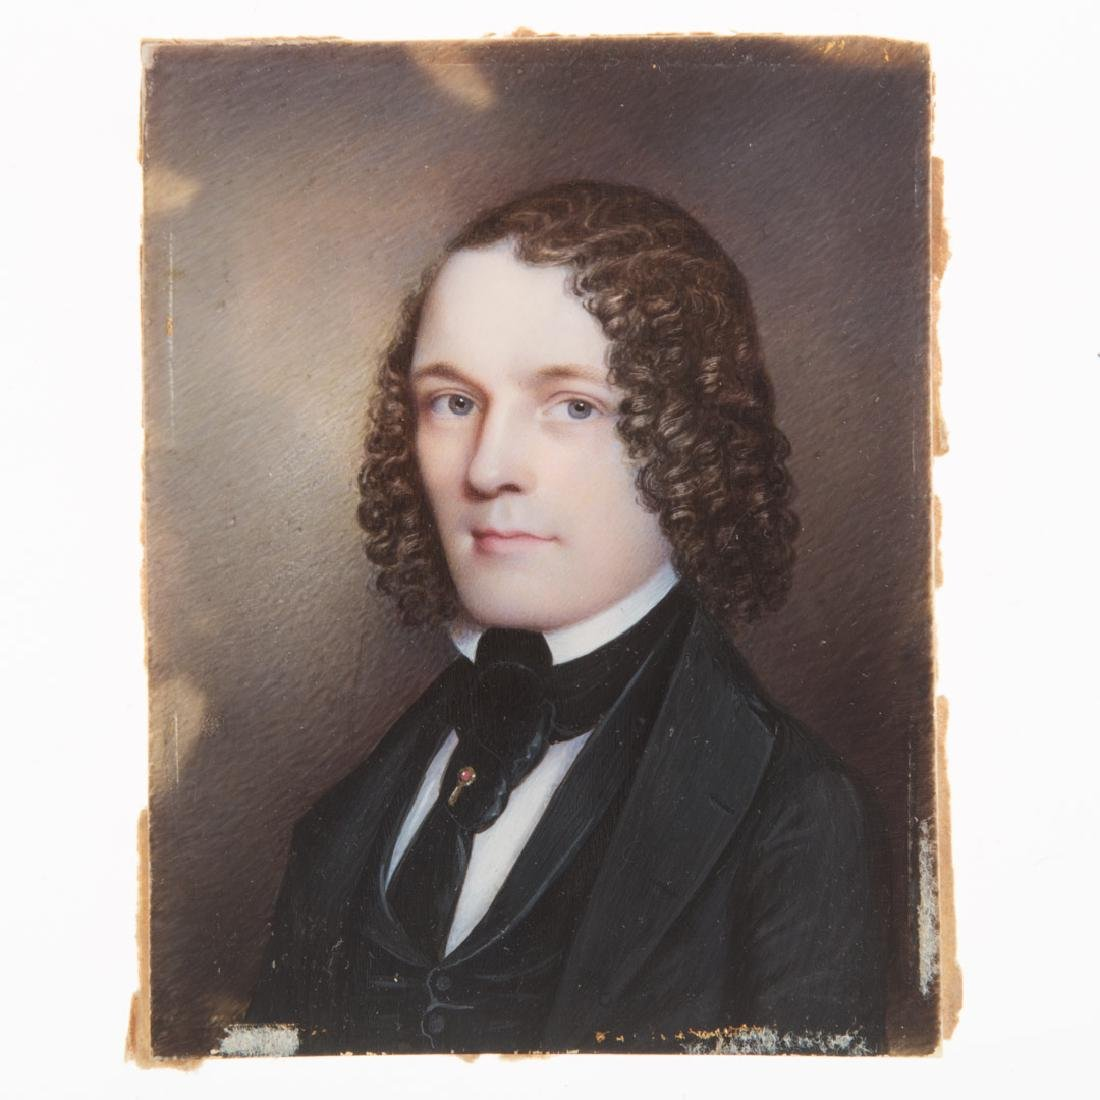 American School 19th century portrait miniature - 4